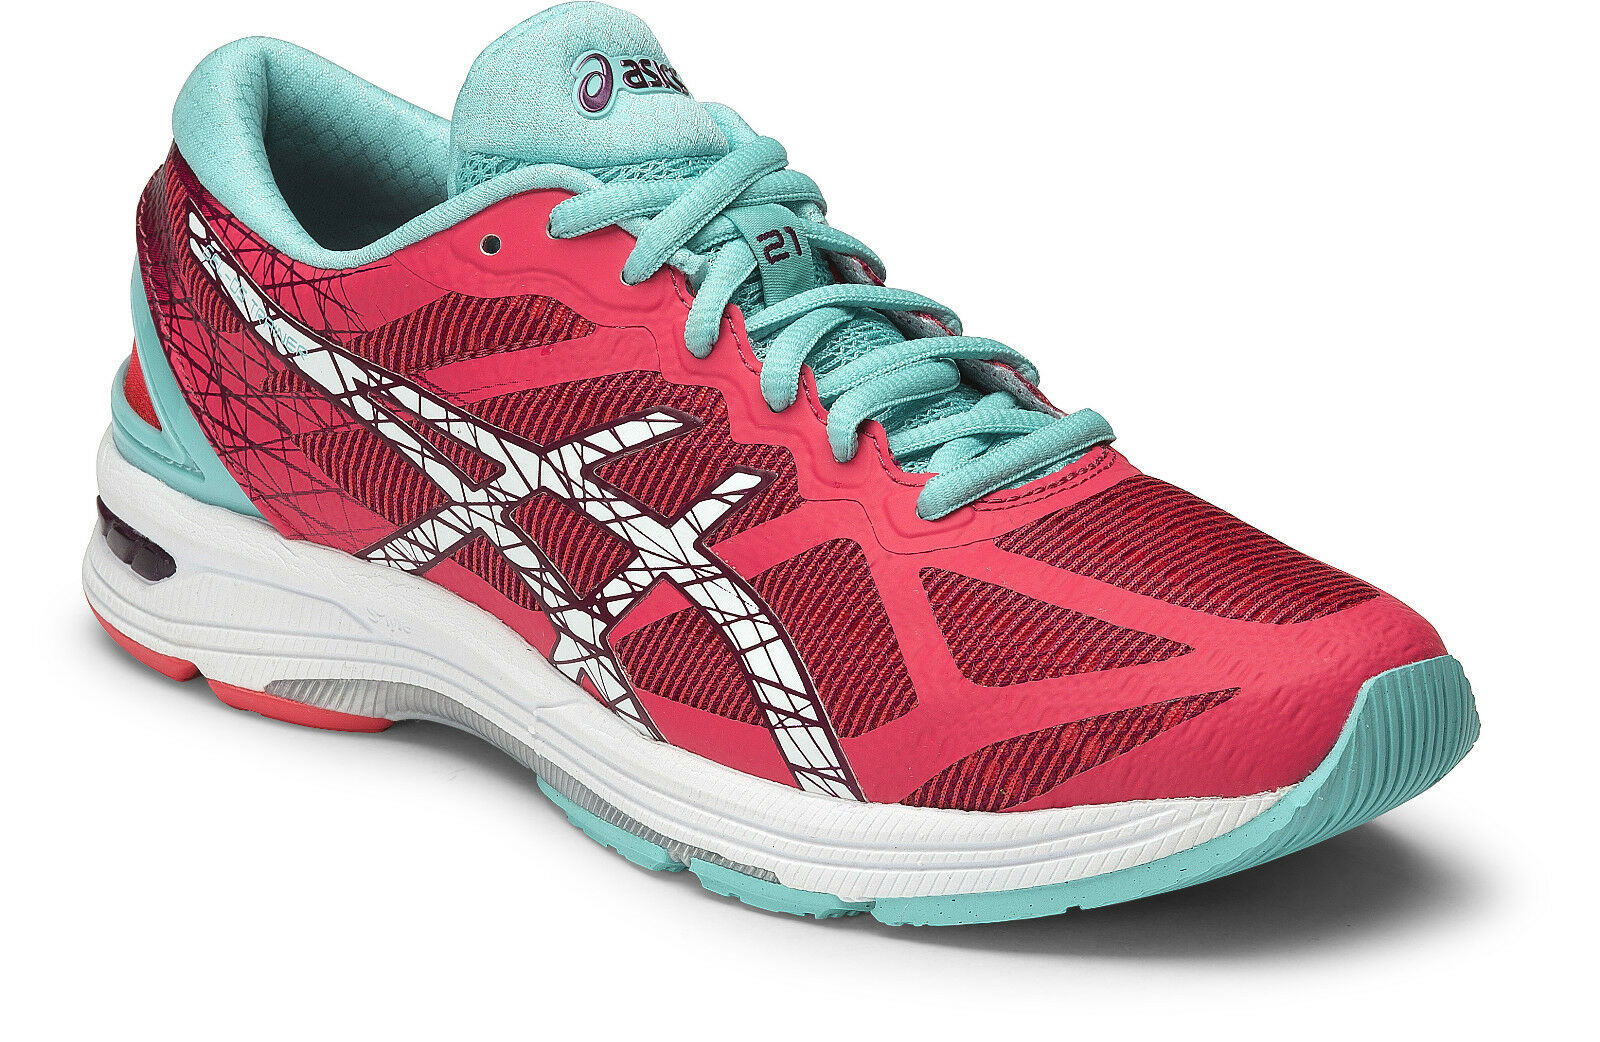 Asics Gel DS Trainer 21 Donna Running Shoes (B) (2001) + Free Aus Delivery!